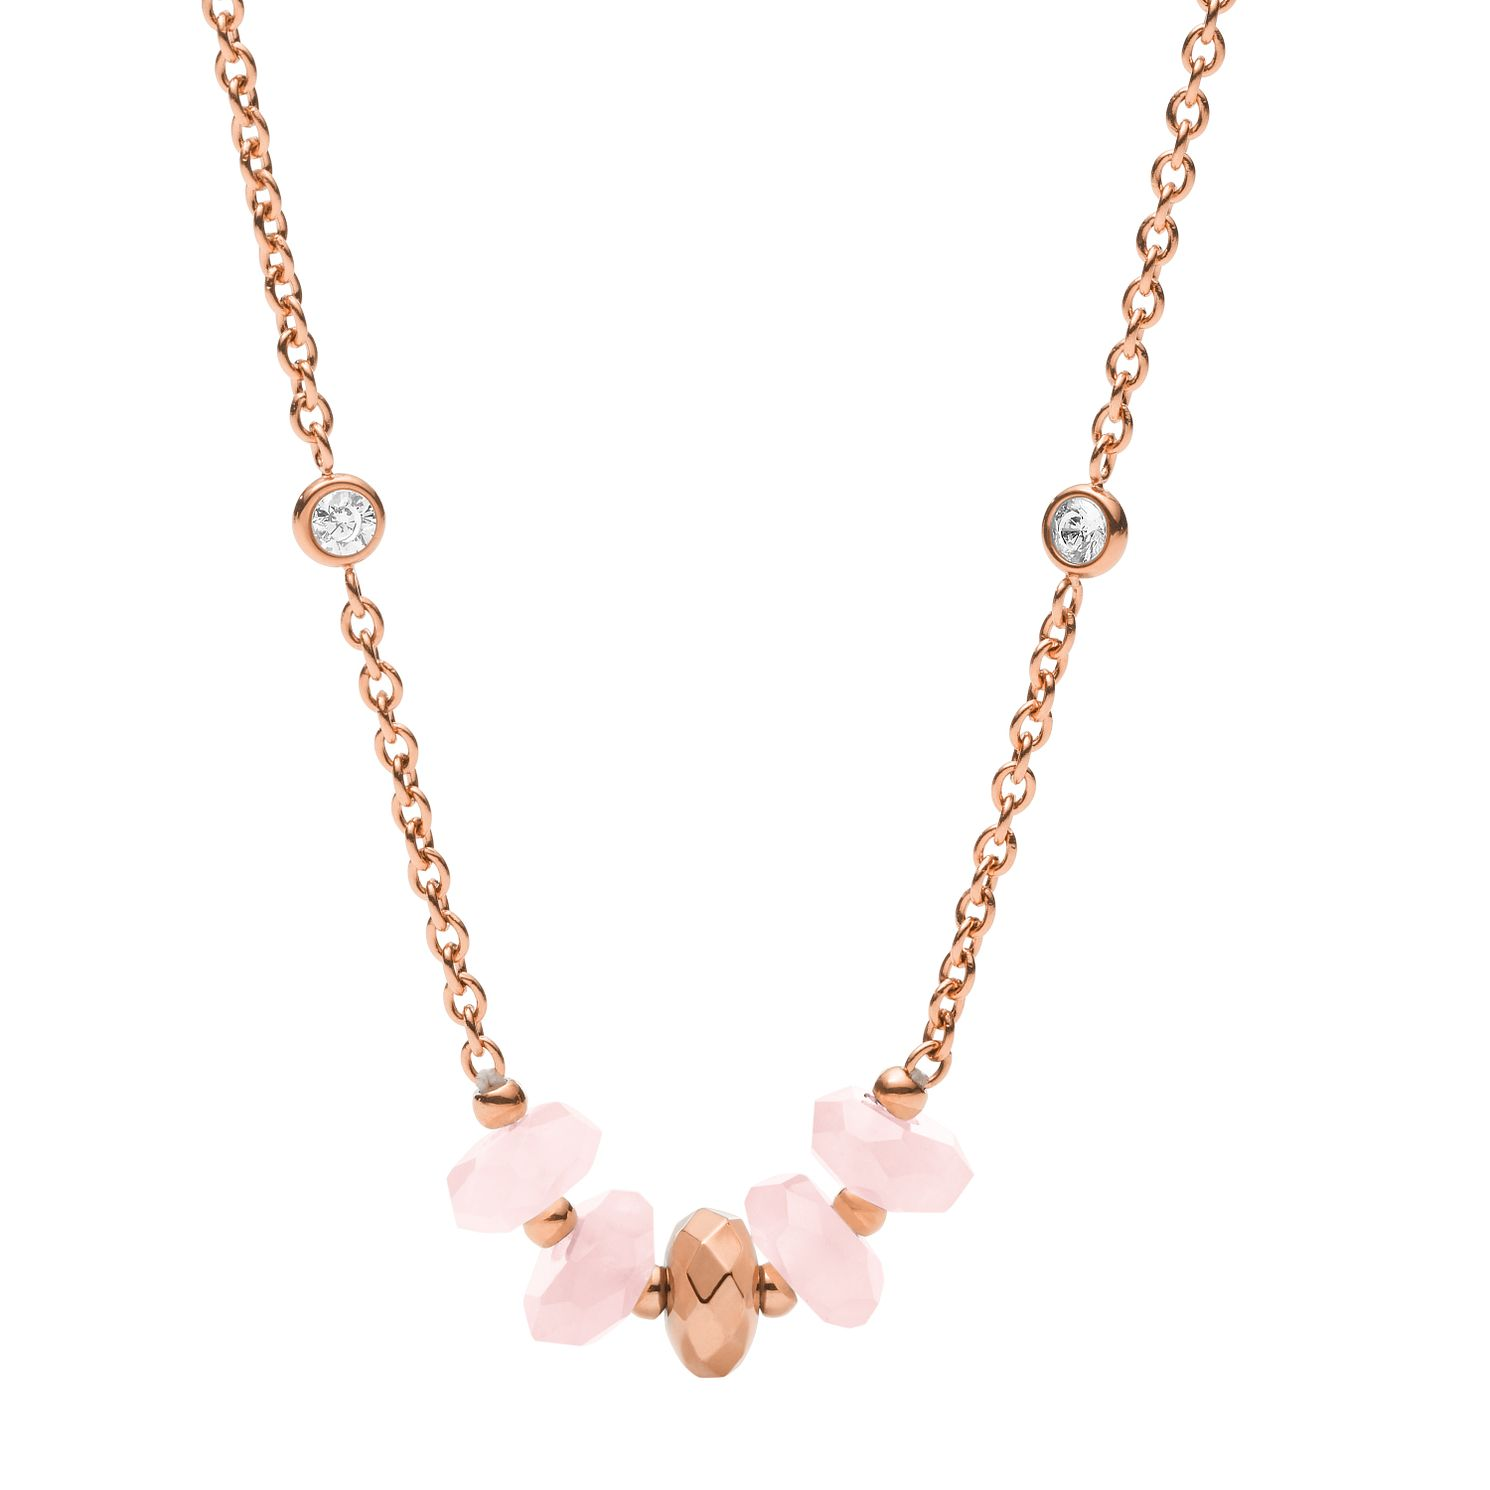 Fossil Classics Rose Gold Tone Rose Quartz Necklace - Product number 2358646